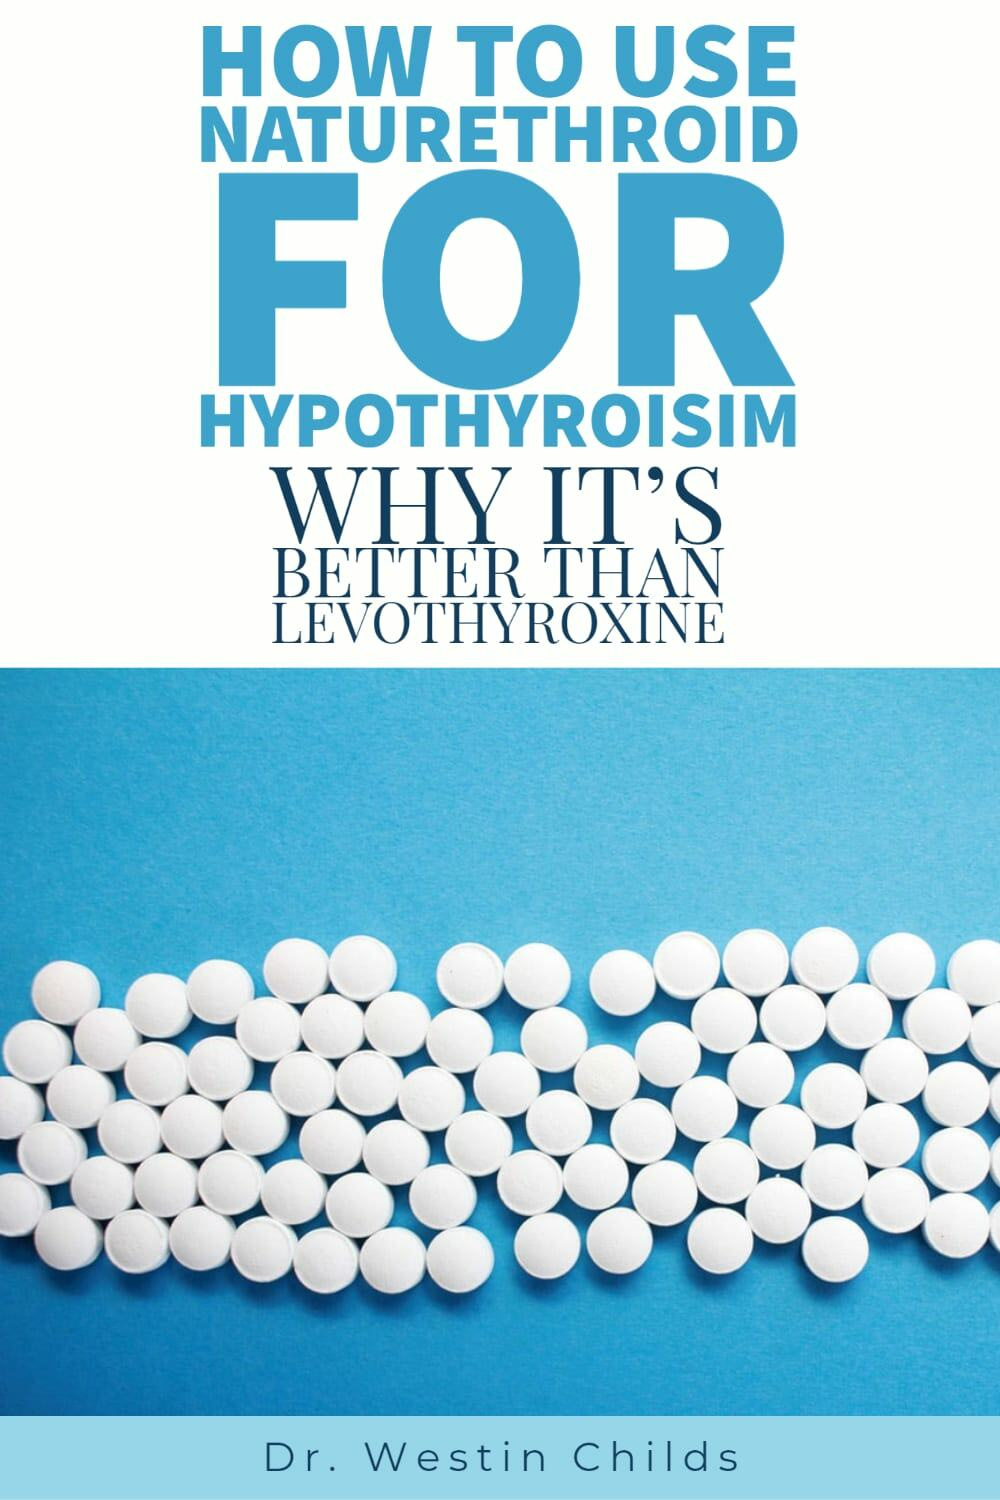 how to use naturethroid for hypothyroidism